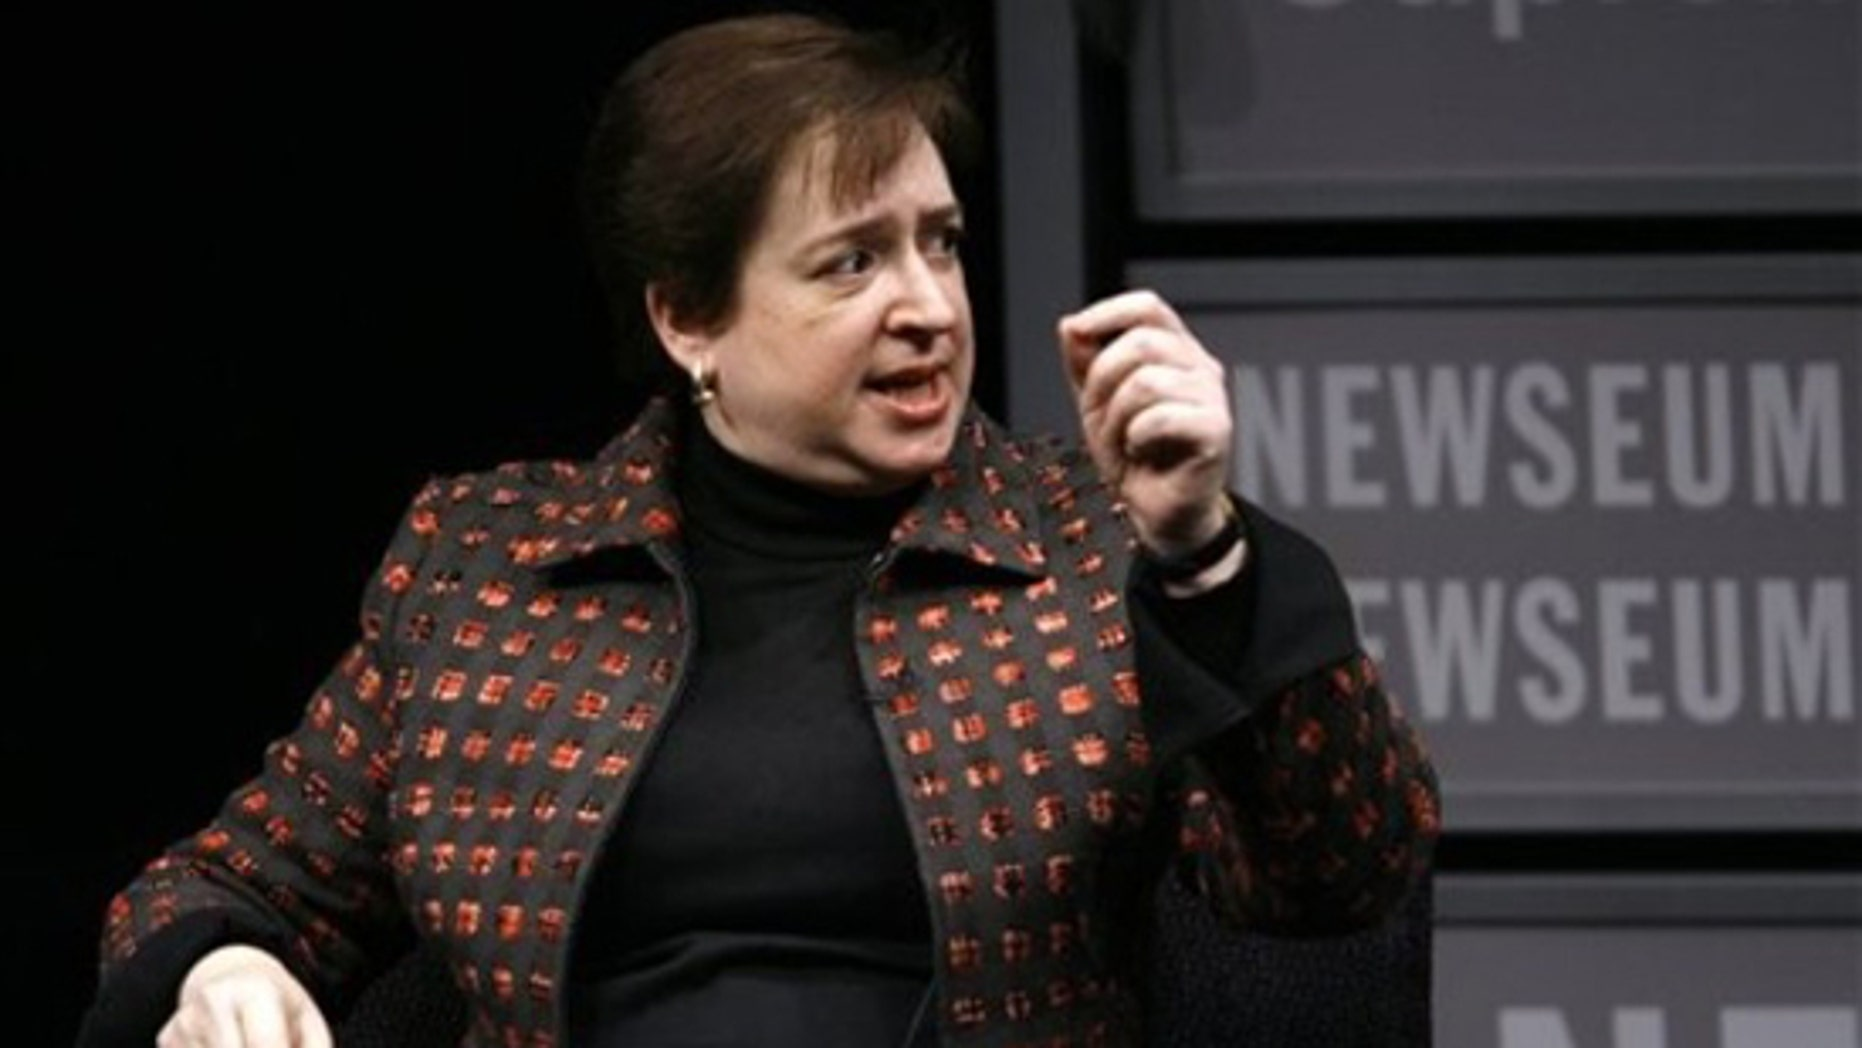 U.S. Solicitor General Elena Kagan speaks during a panel about Women Advocates of the Supreme Court Bar, Thursday, Jan. 28,2010, at the Newseum in Washington. (AP)